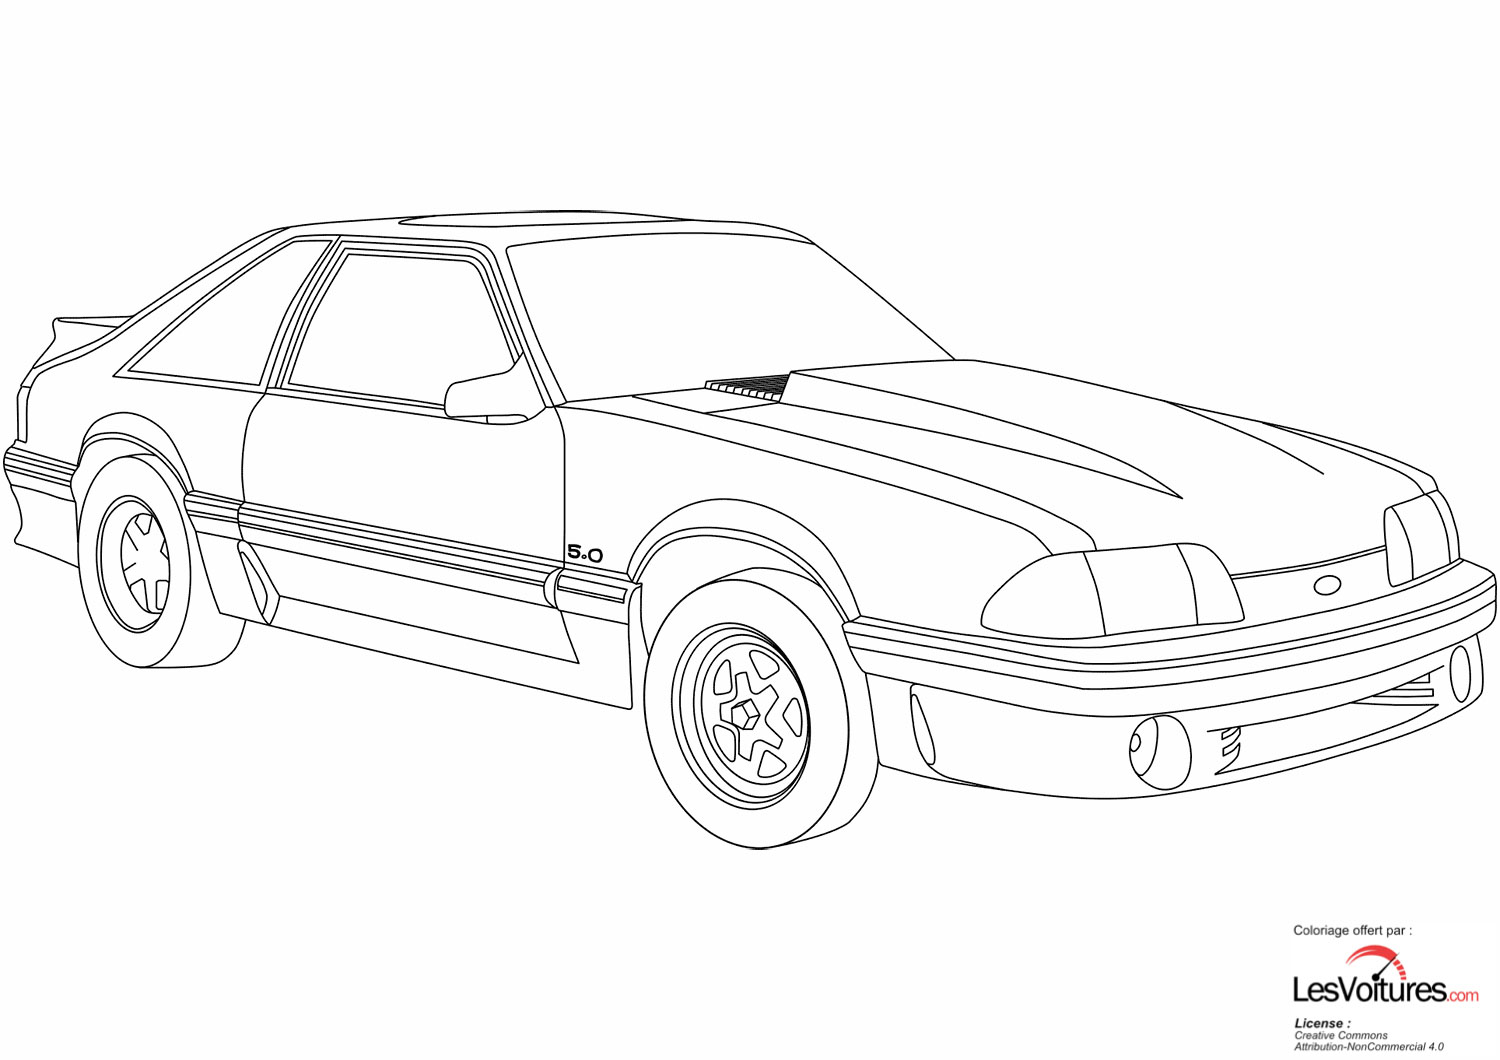 Ford Mustang Coloriage Voiture 1